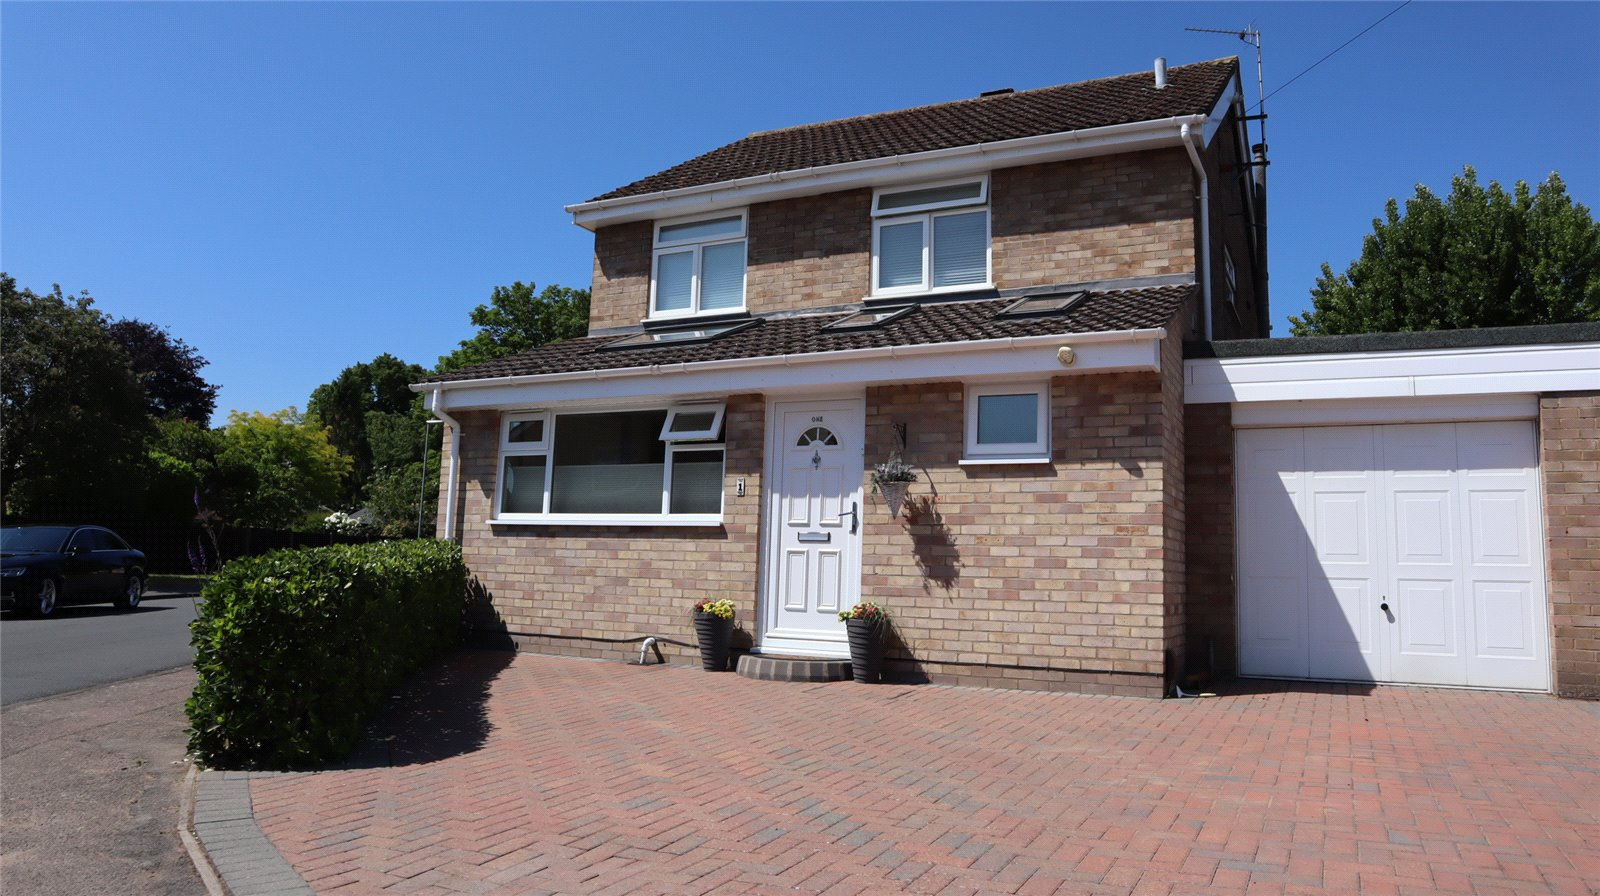 3 bed house for sale in Hathaway Close, Eaton Socon  - Property Image 3